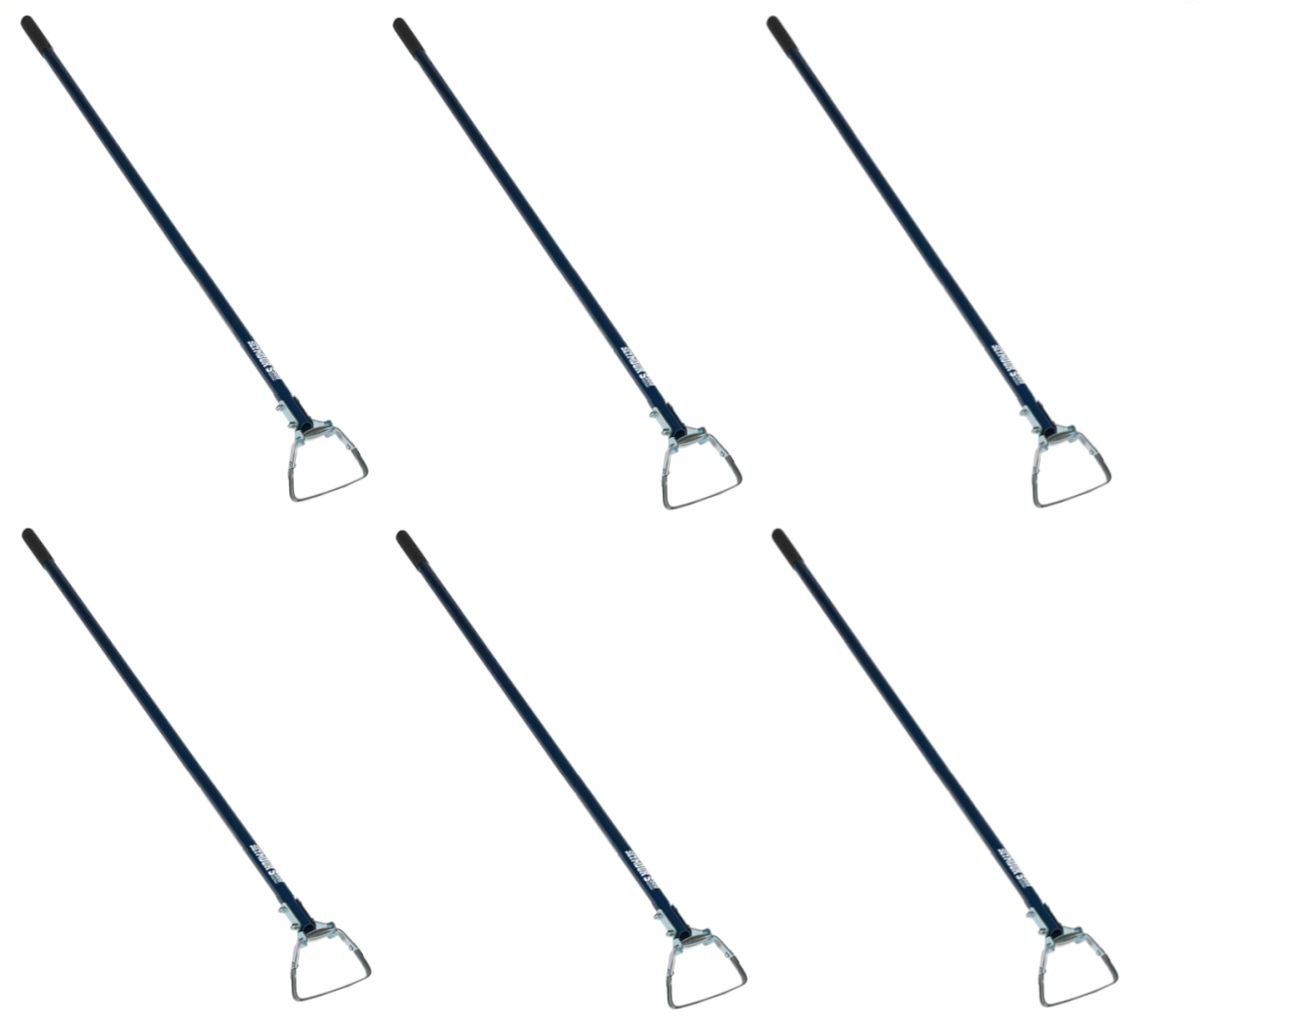 Pack of 6 - Midwest Rake 40100 Garden Loop Hoe